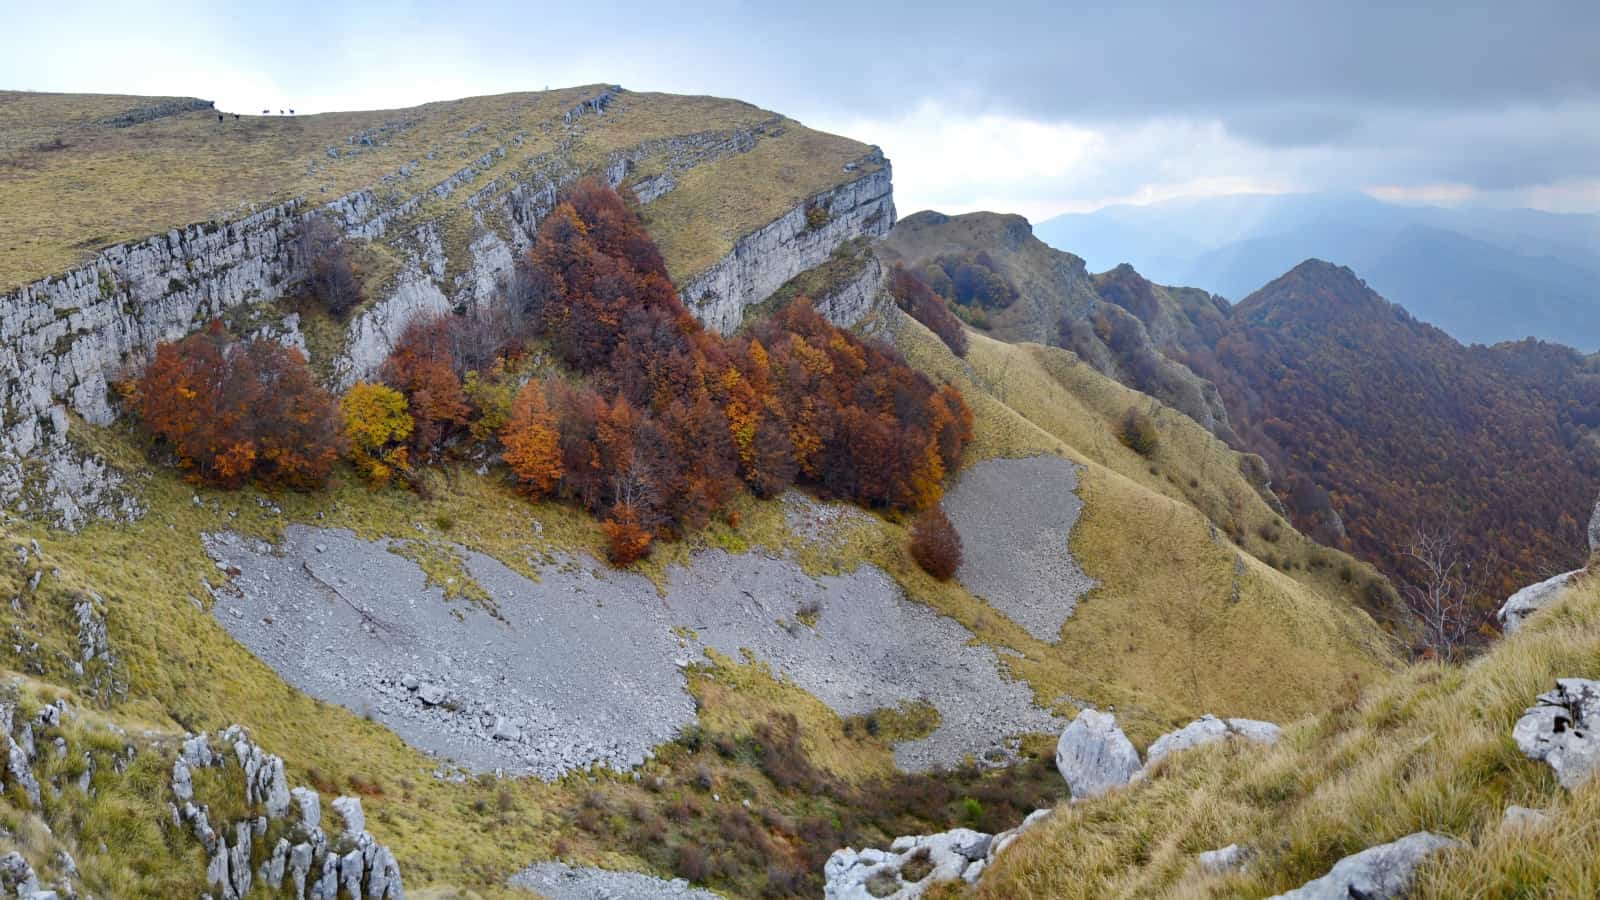 Autumn beeches below the ridge of Mare walls - Panorama view of Vrachanski Balkan Nature Park- photo: Vrachanski Balkan Nature Park/Krasimir Lakovski